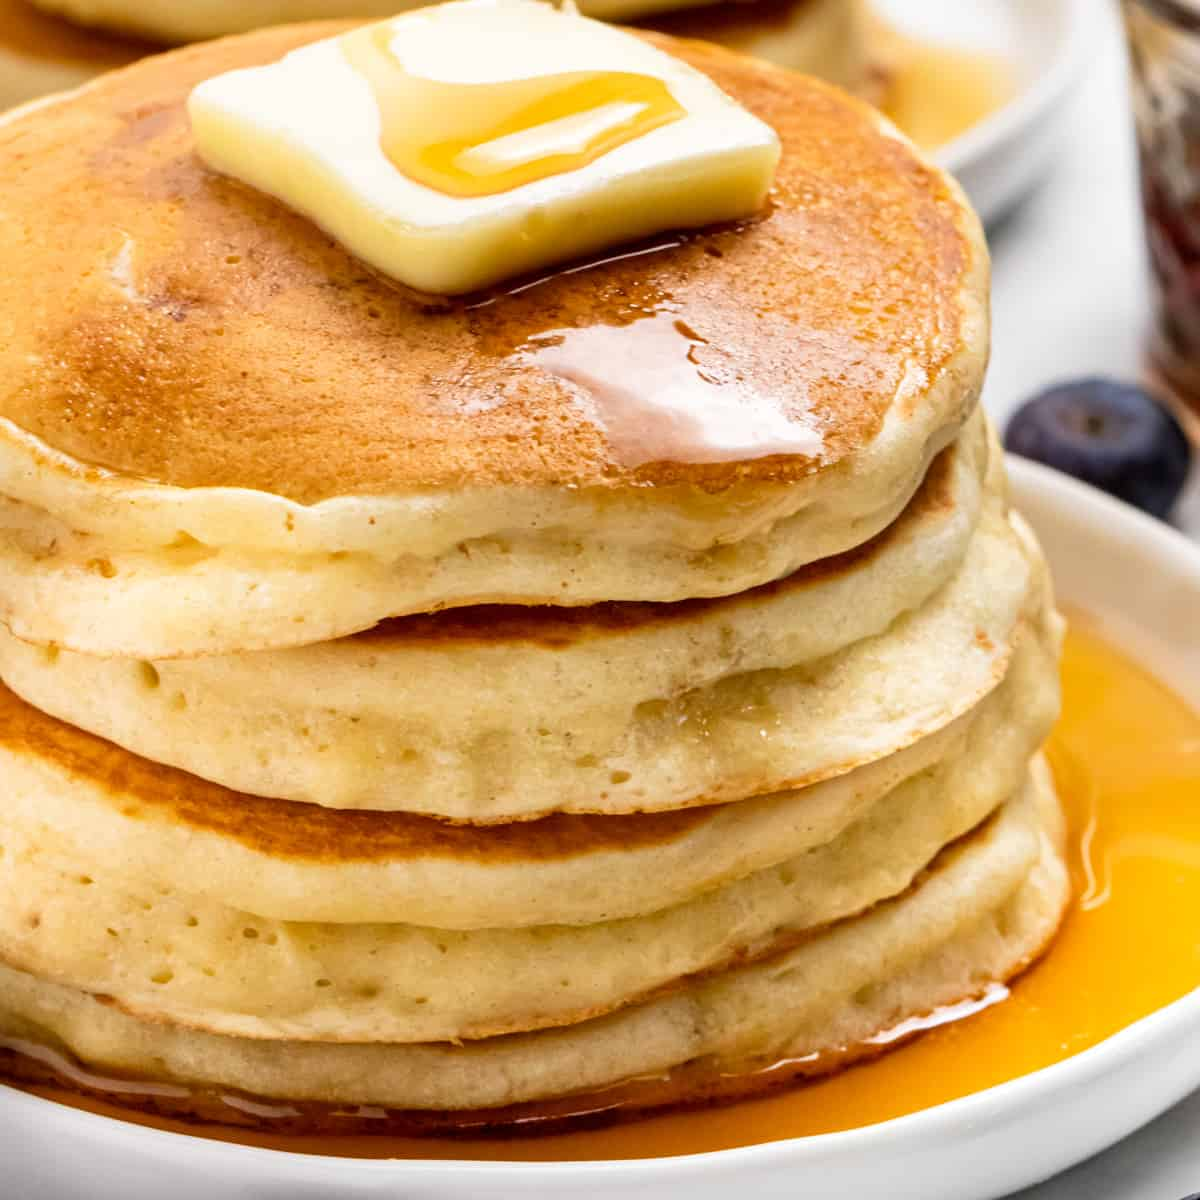 Stack of fluffy pancakes with butter and syrup drizzle.